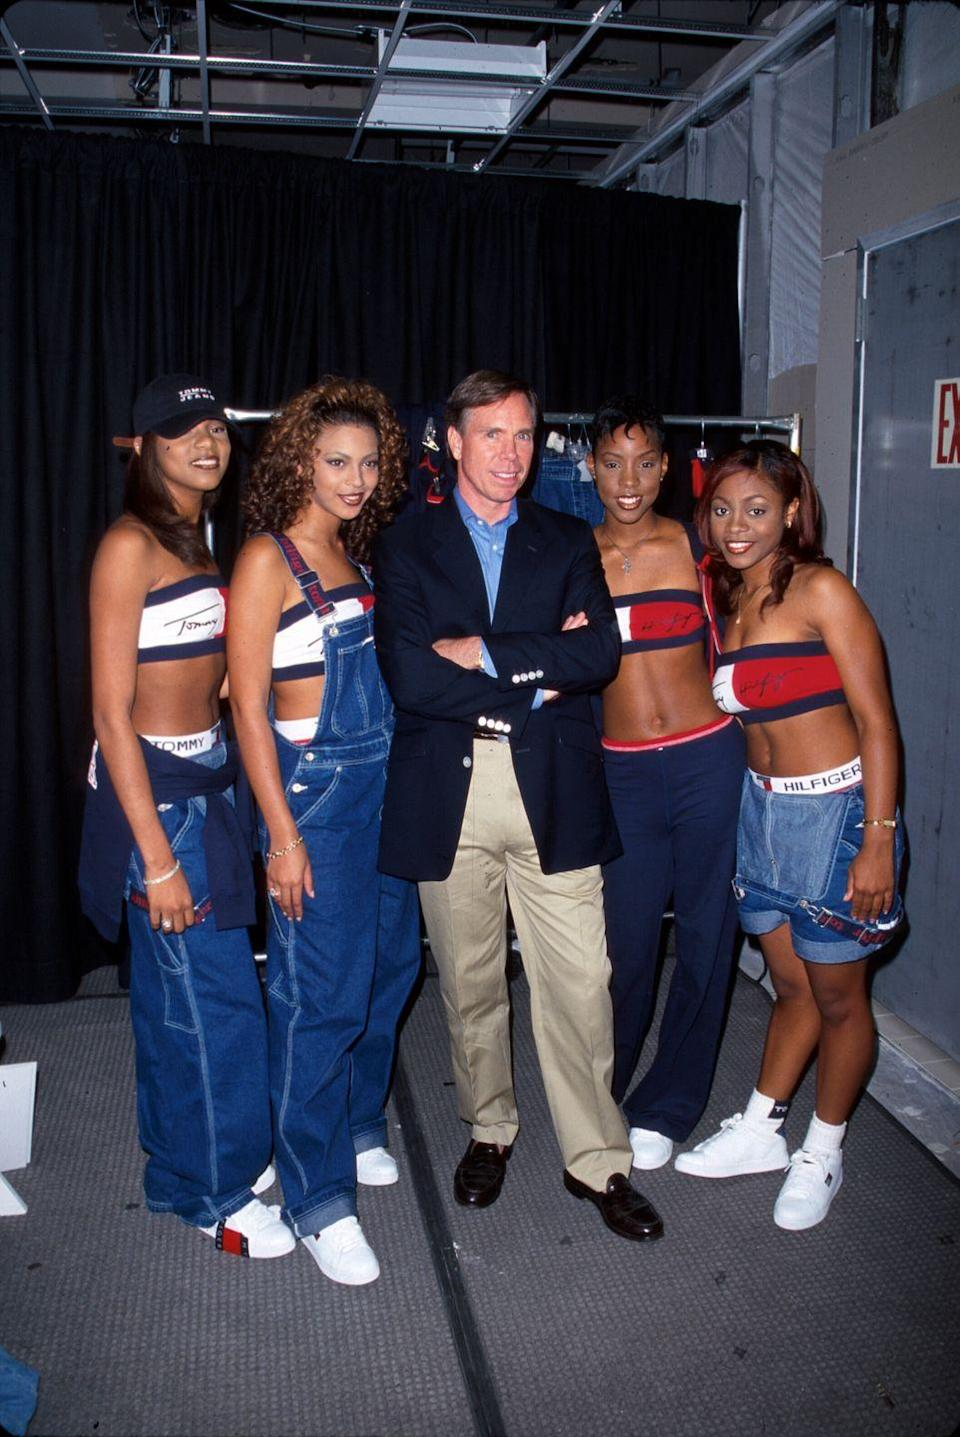 <p>Tommy Hilfiger jeans, seen here on Destiny's Child, were such A Thing in the late '90s. (As were denim overalls with crop tops underneath.)</p>